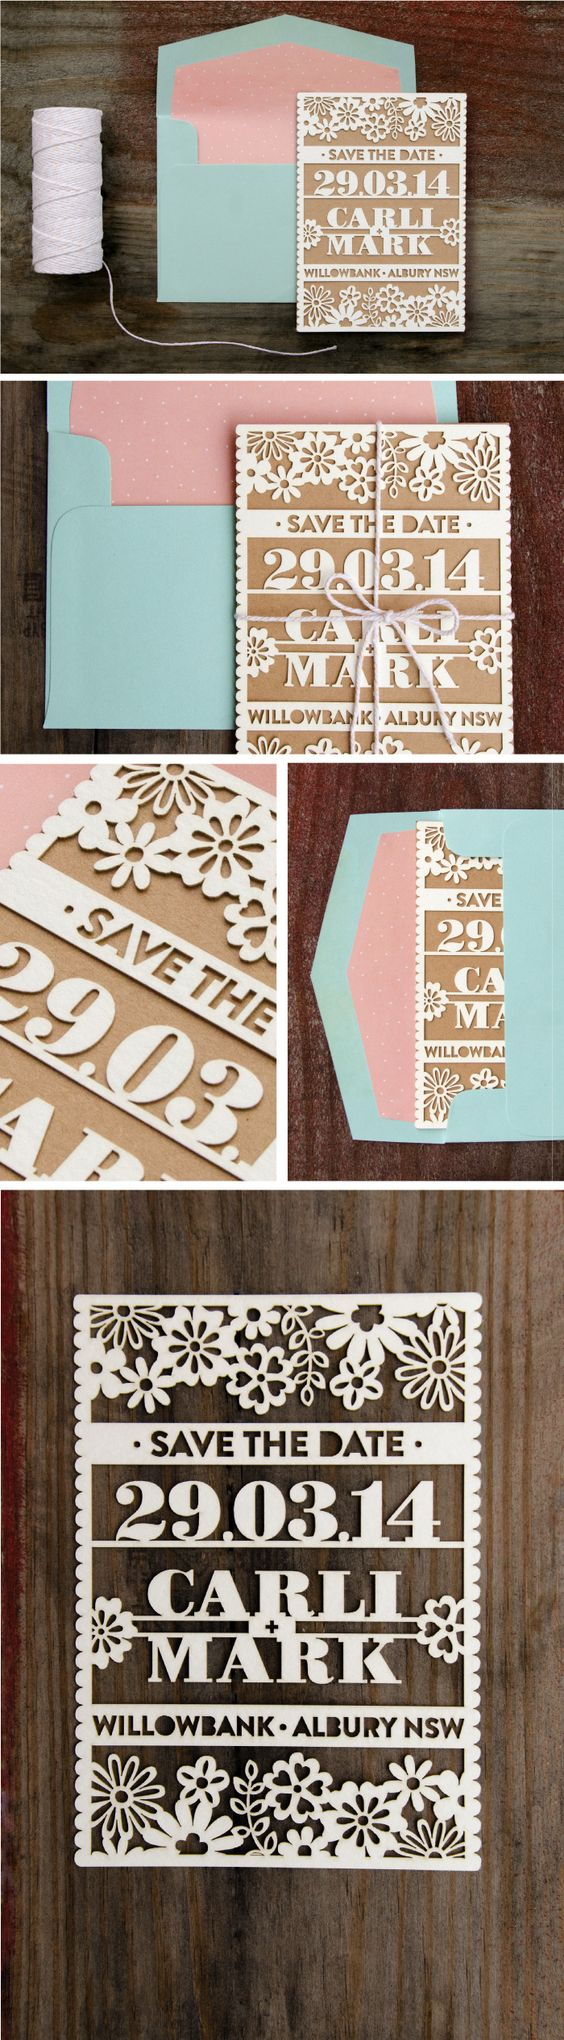 Laser Cut Save the Date by Love Carli